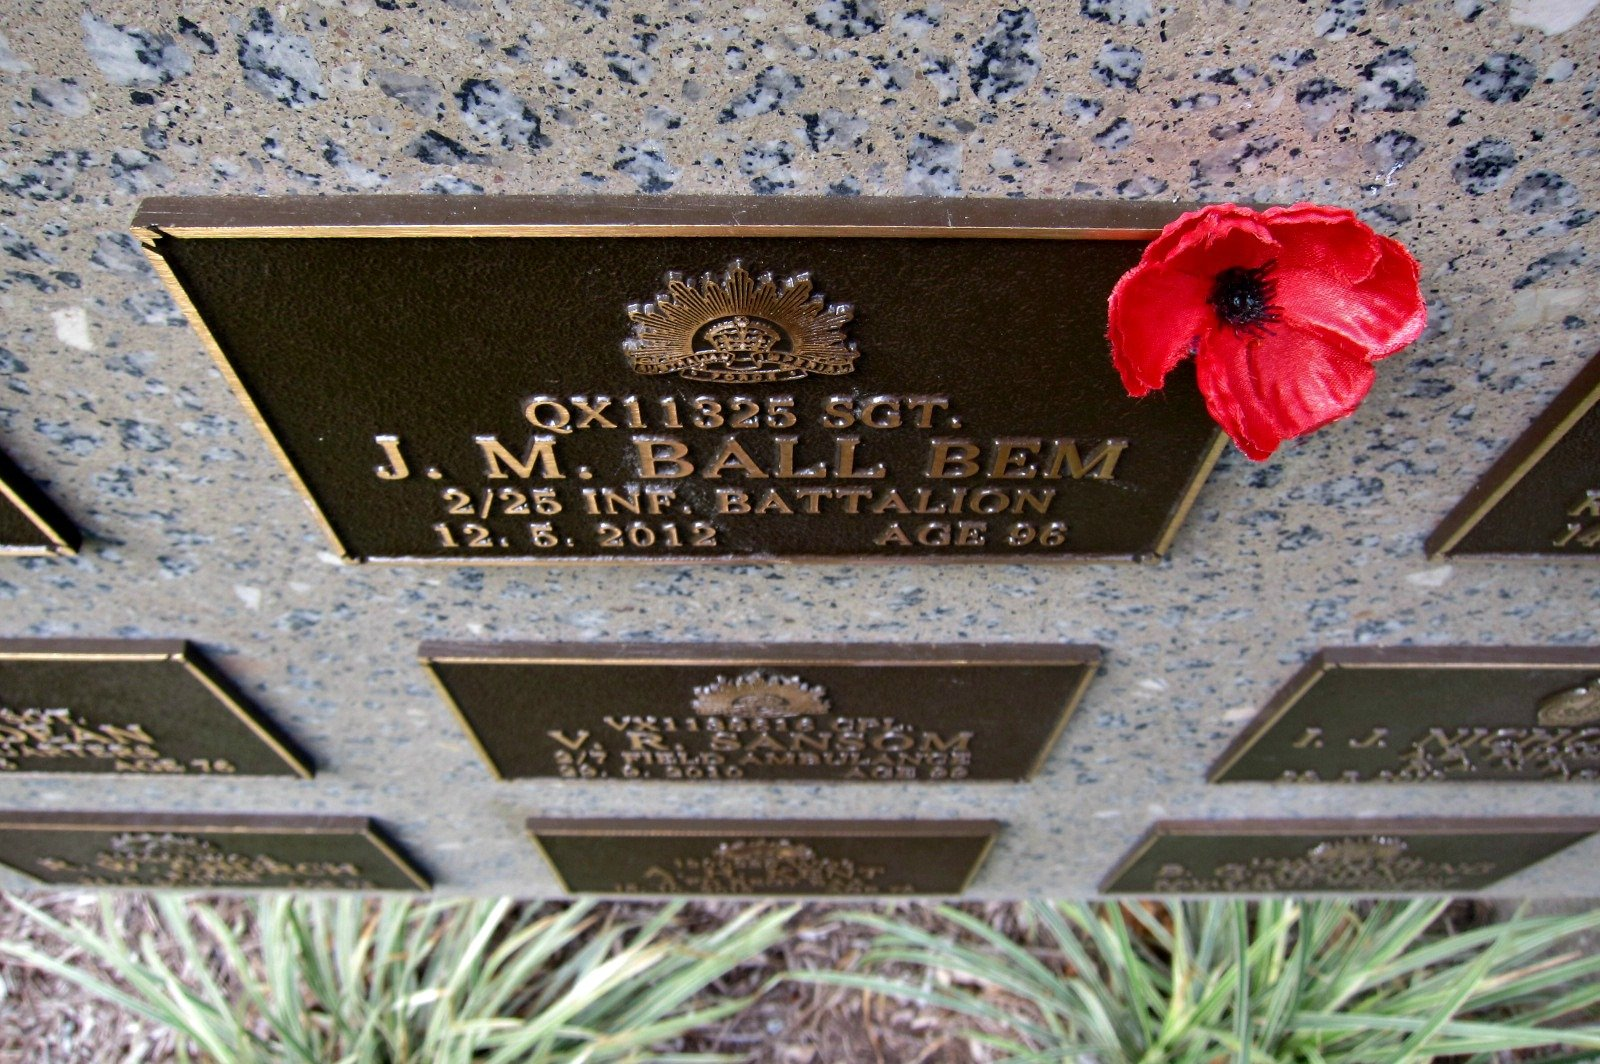 A Poppy tucked into a memorial plaque -Anzac Day - N.Q. Garden of Remembrance